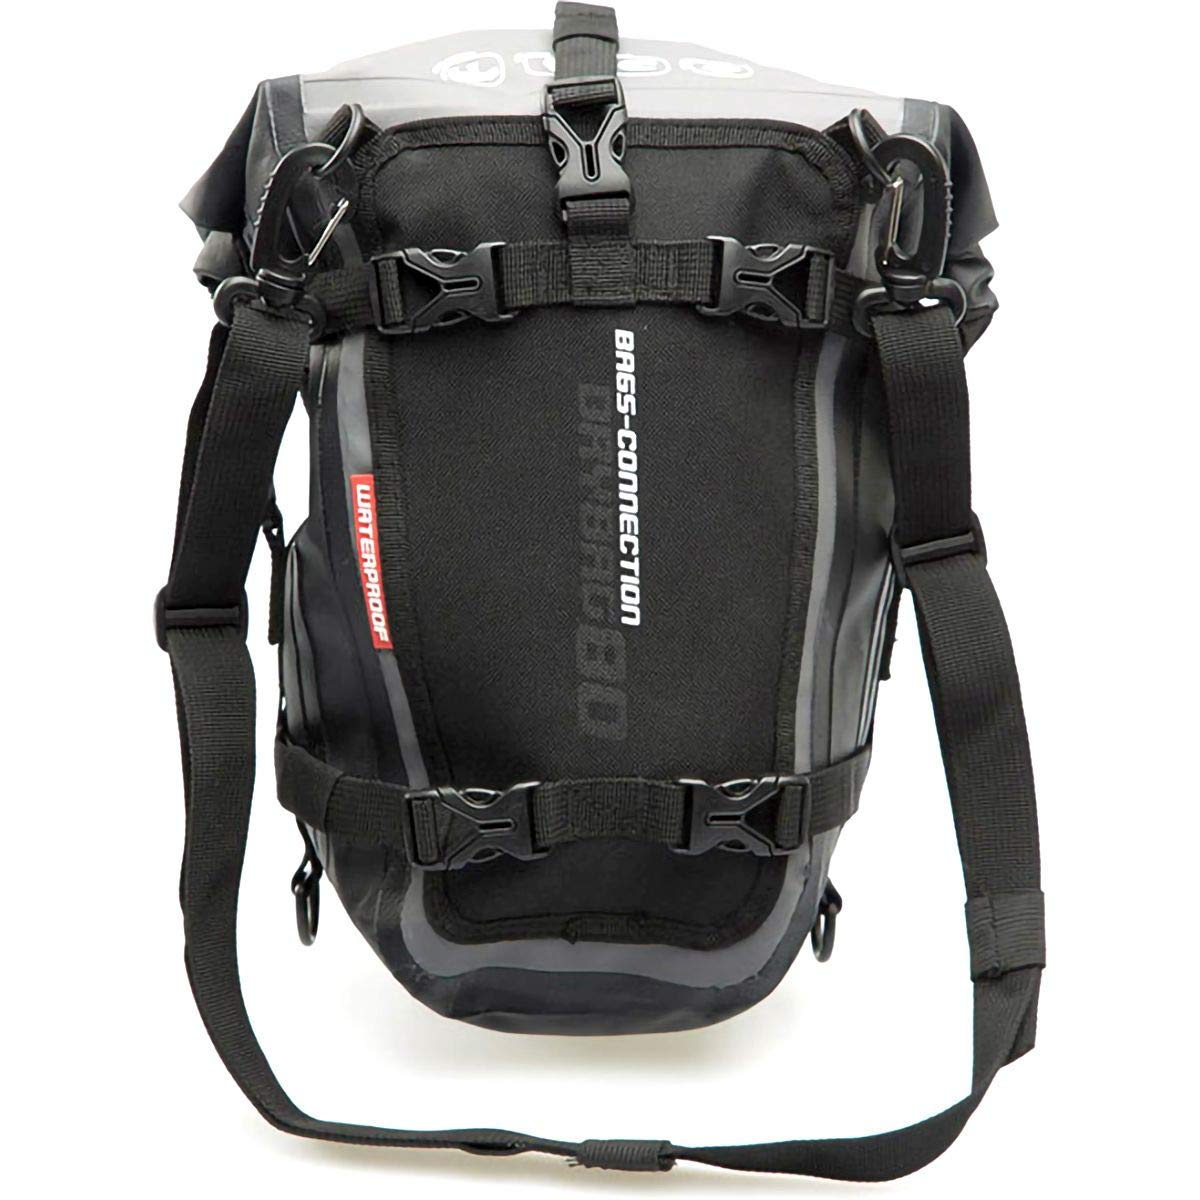 Amazon.com: SW-Motech bags-connection Drybag 80 tanque ...